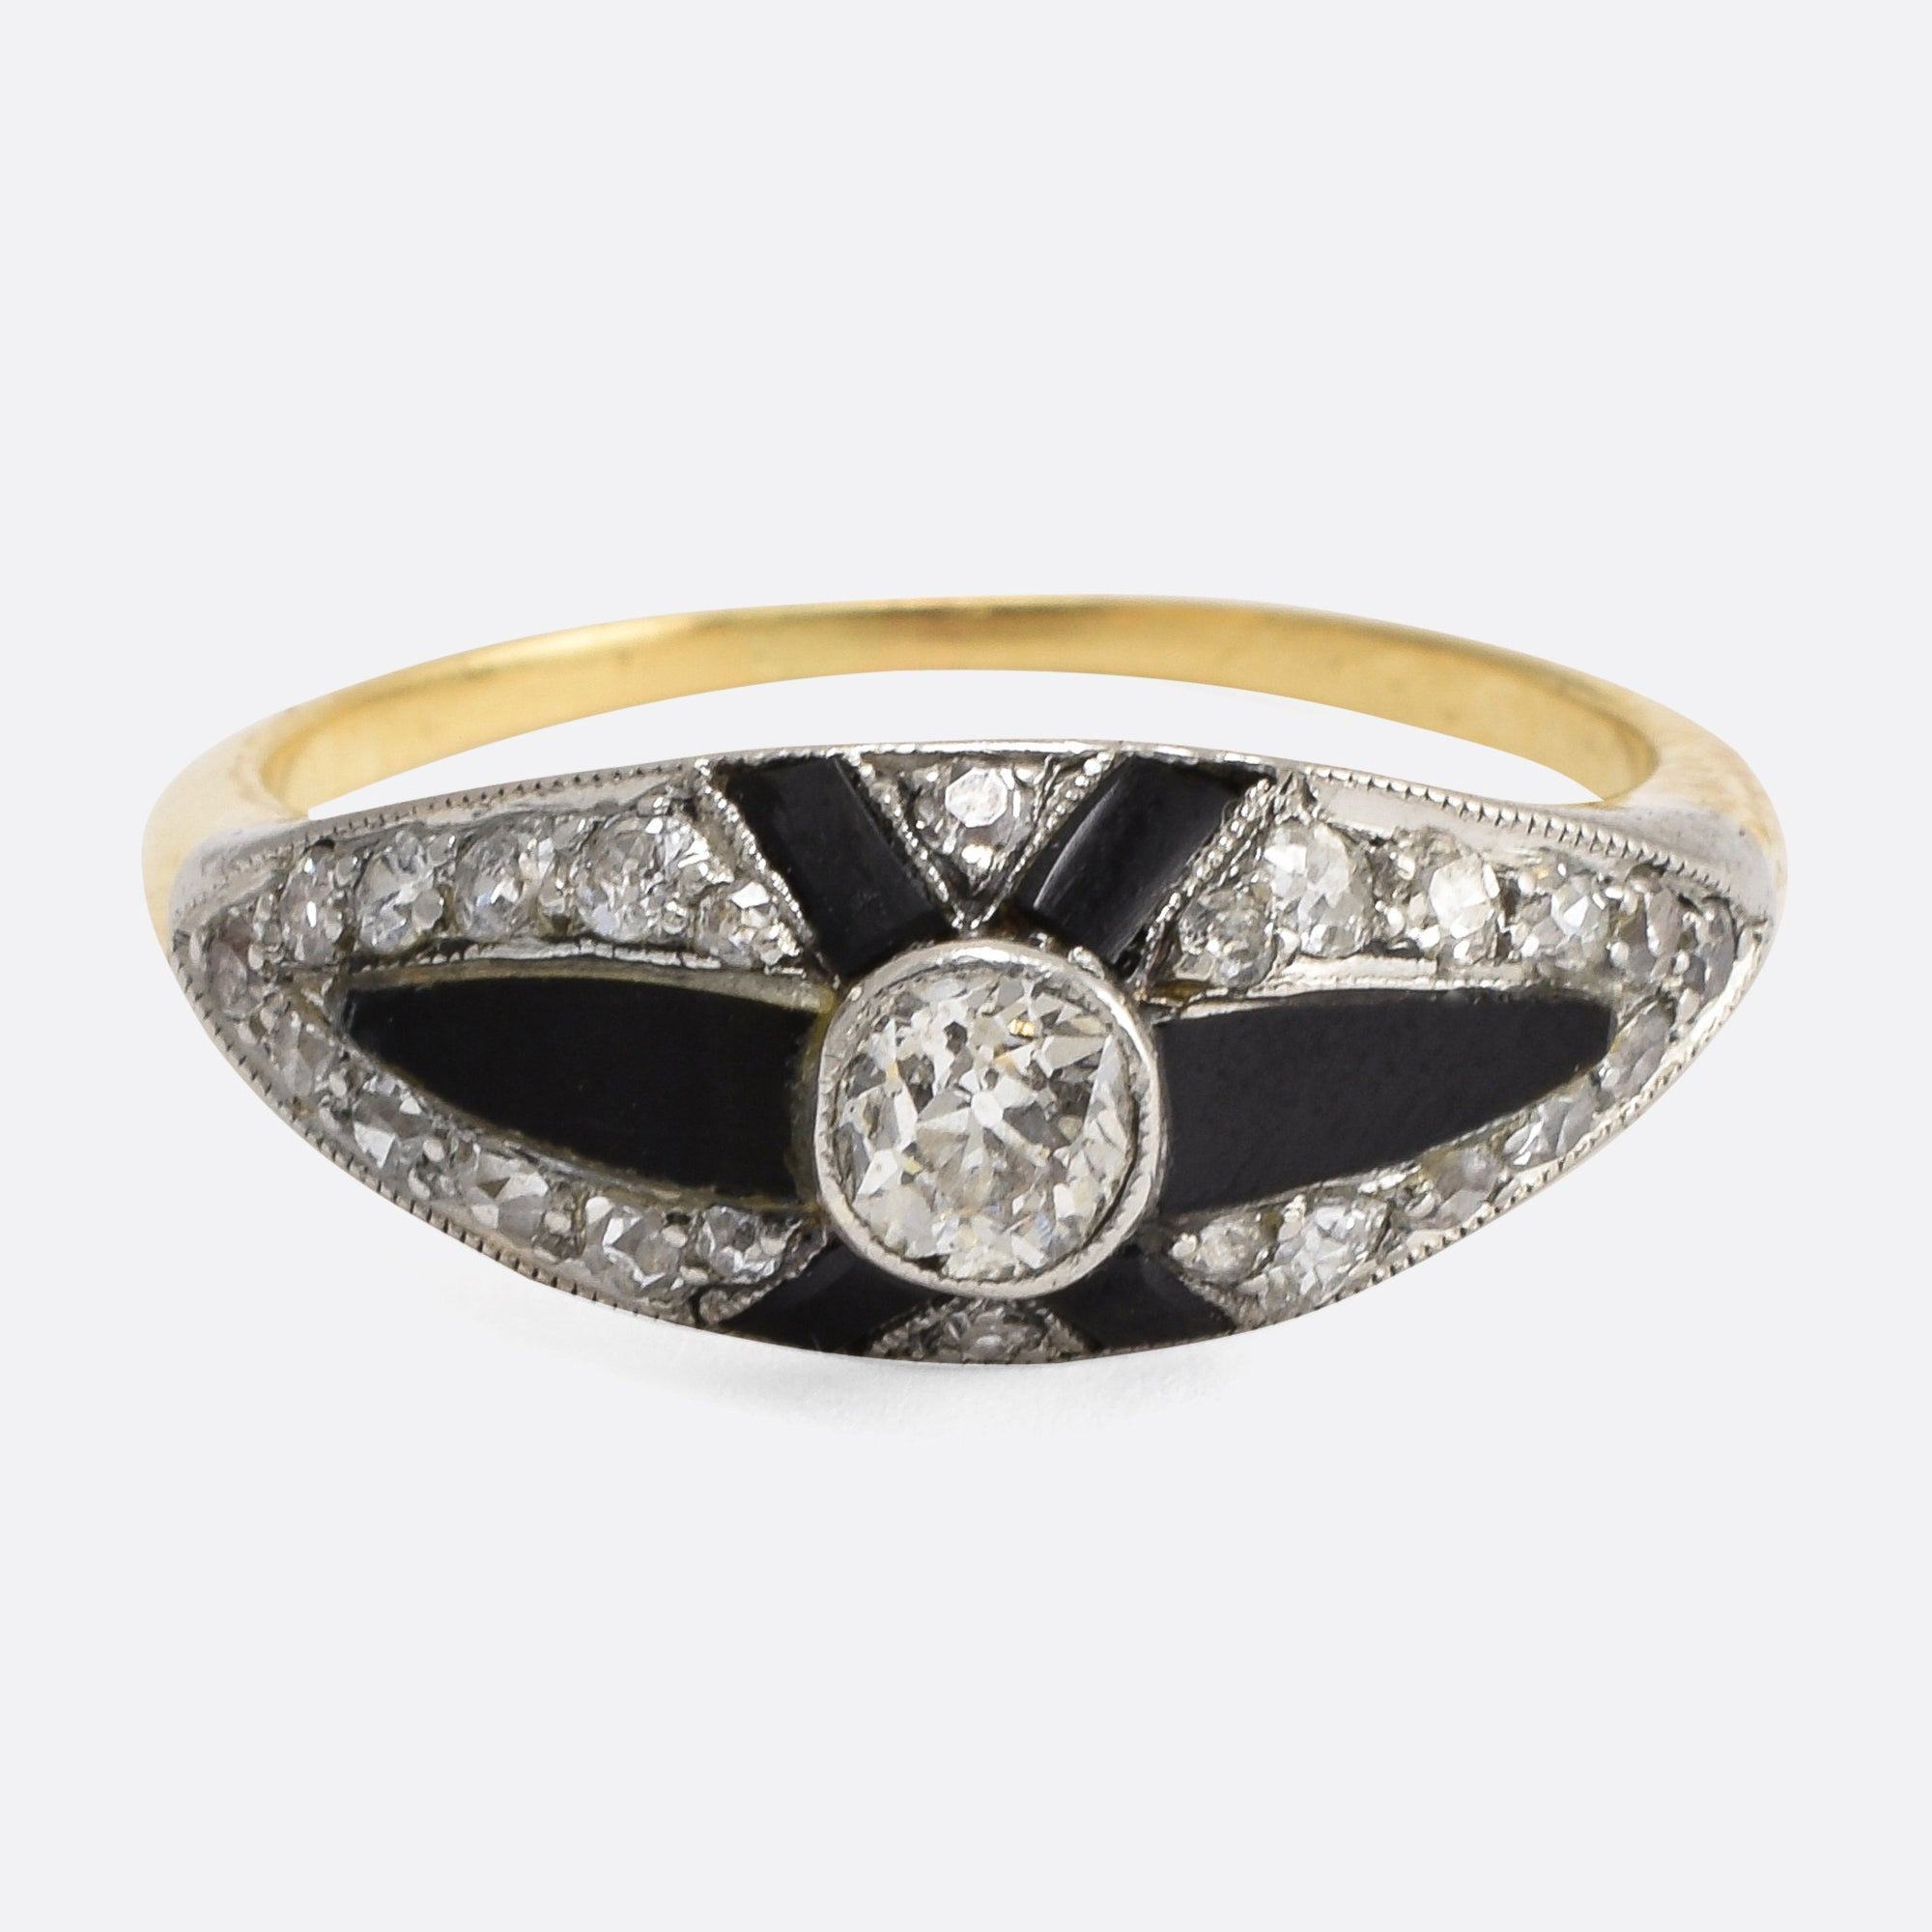 re hgk emerald rings cartier jewels onyx panth wedding s and ring christie christies online panthere diamond